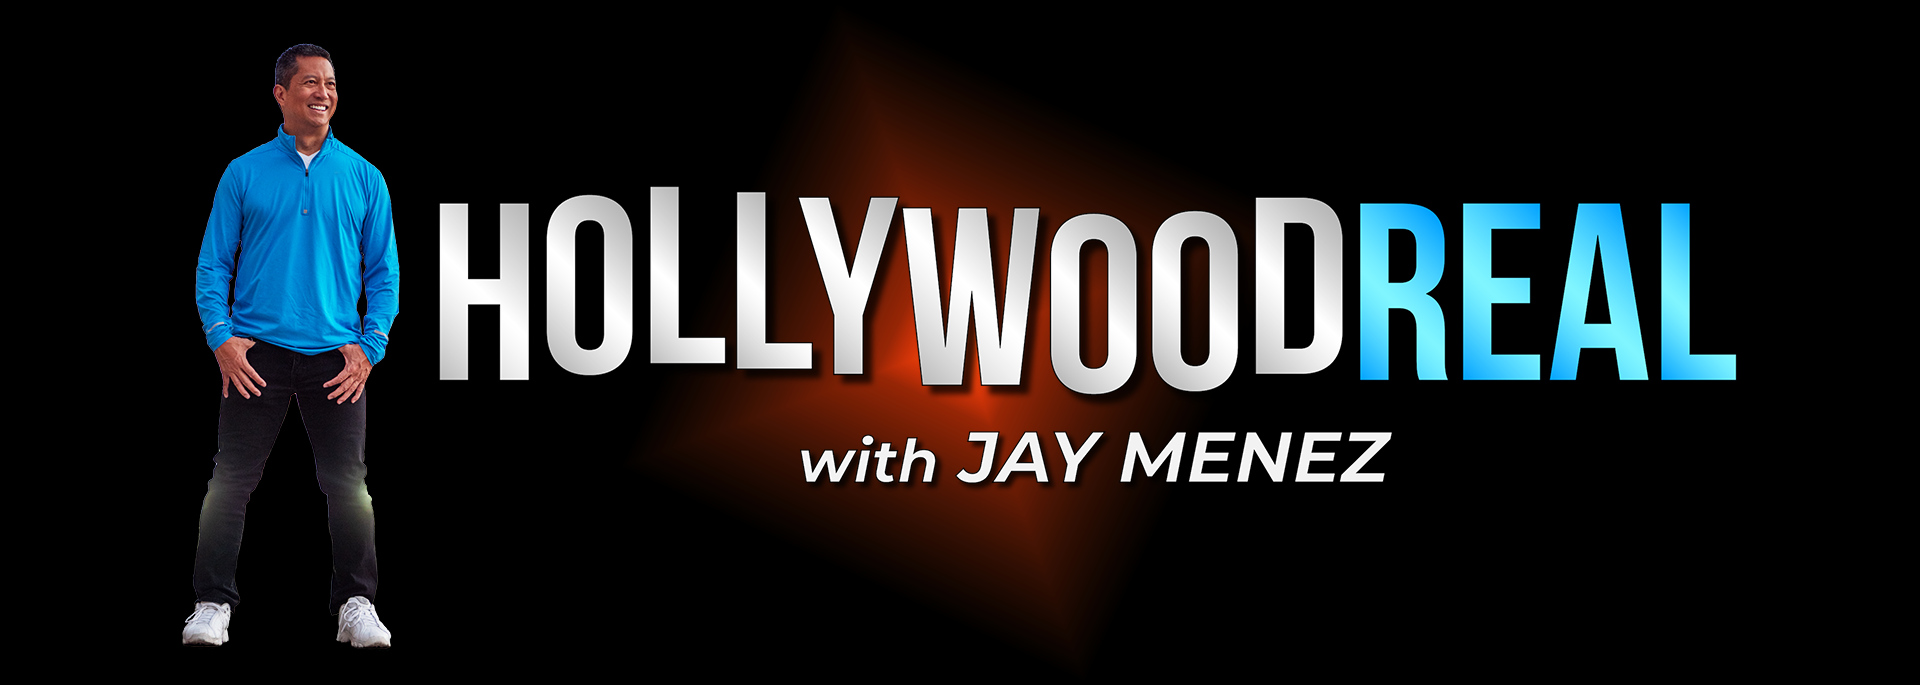 Hollywood Real with Jay Menez channel